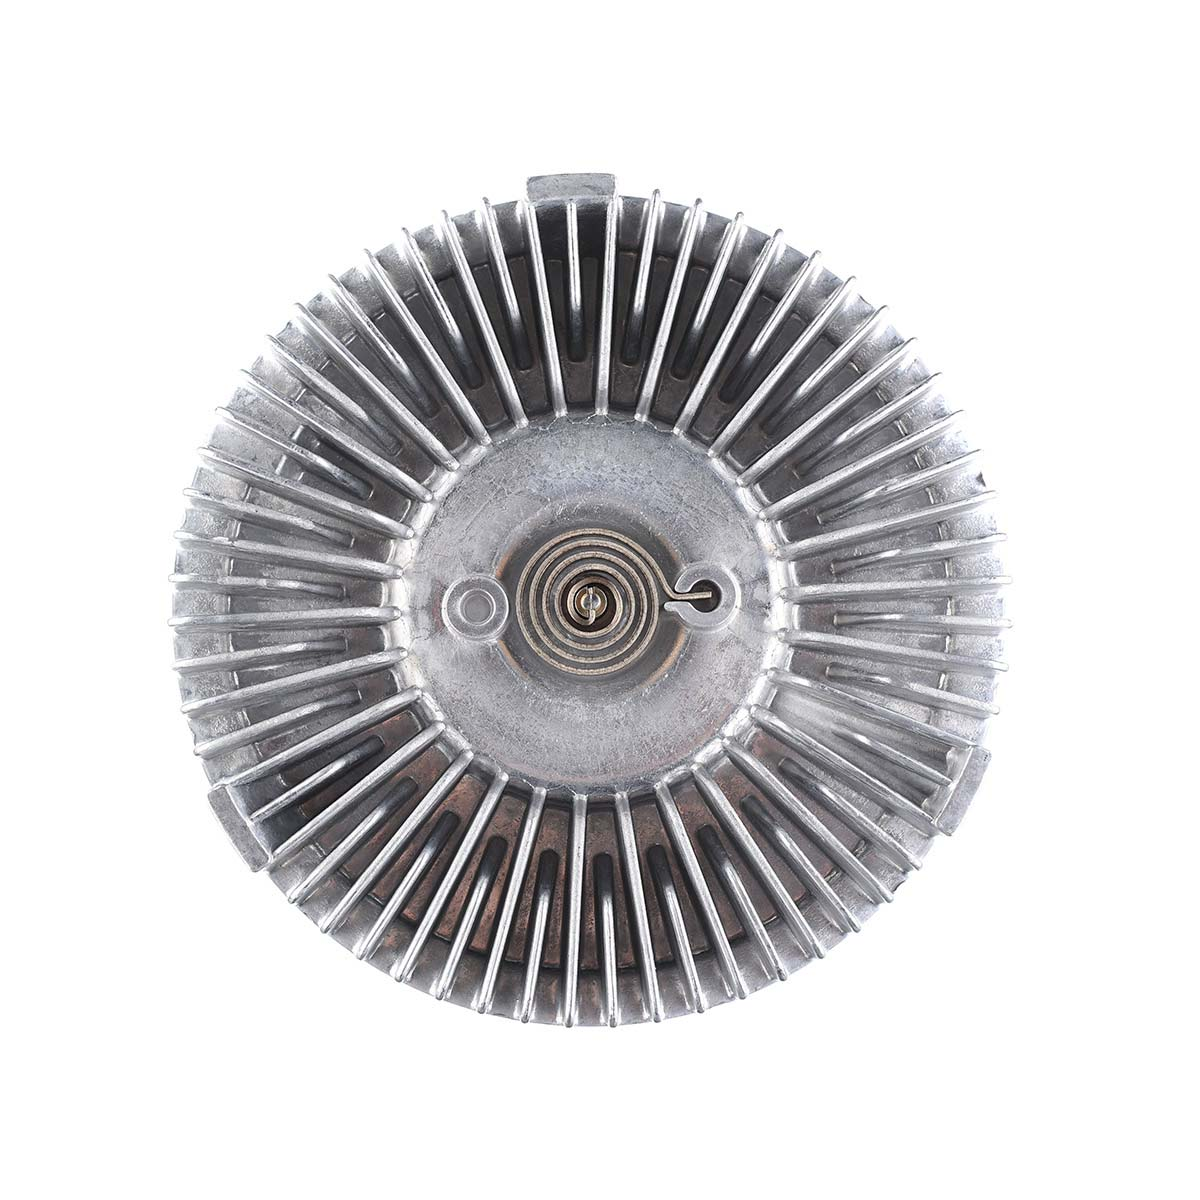 hight resolution of engine cooling fan clutch for ford ranger 1998 1999 2011 explorer sport trac mazda b4000 mercury mountaineer 4 0l f87z8a616fa in fans kits from